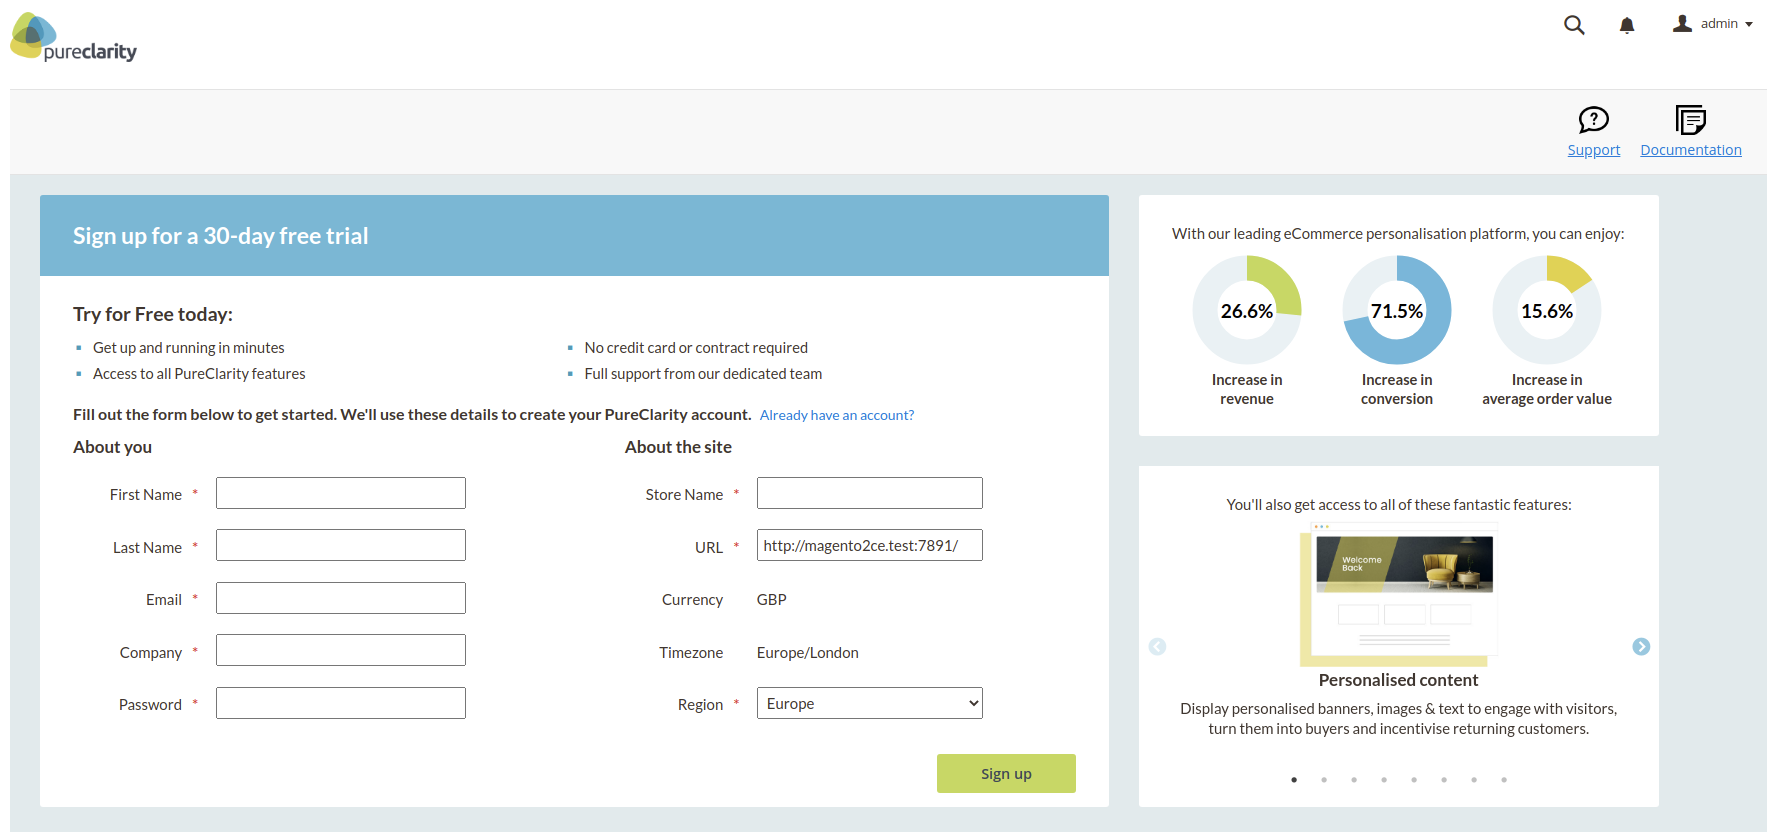 Dashboard page showing signup form and marketing information